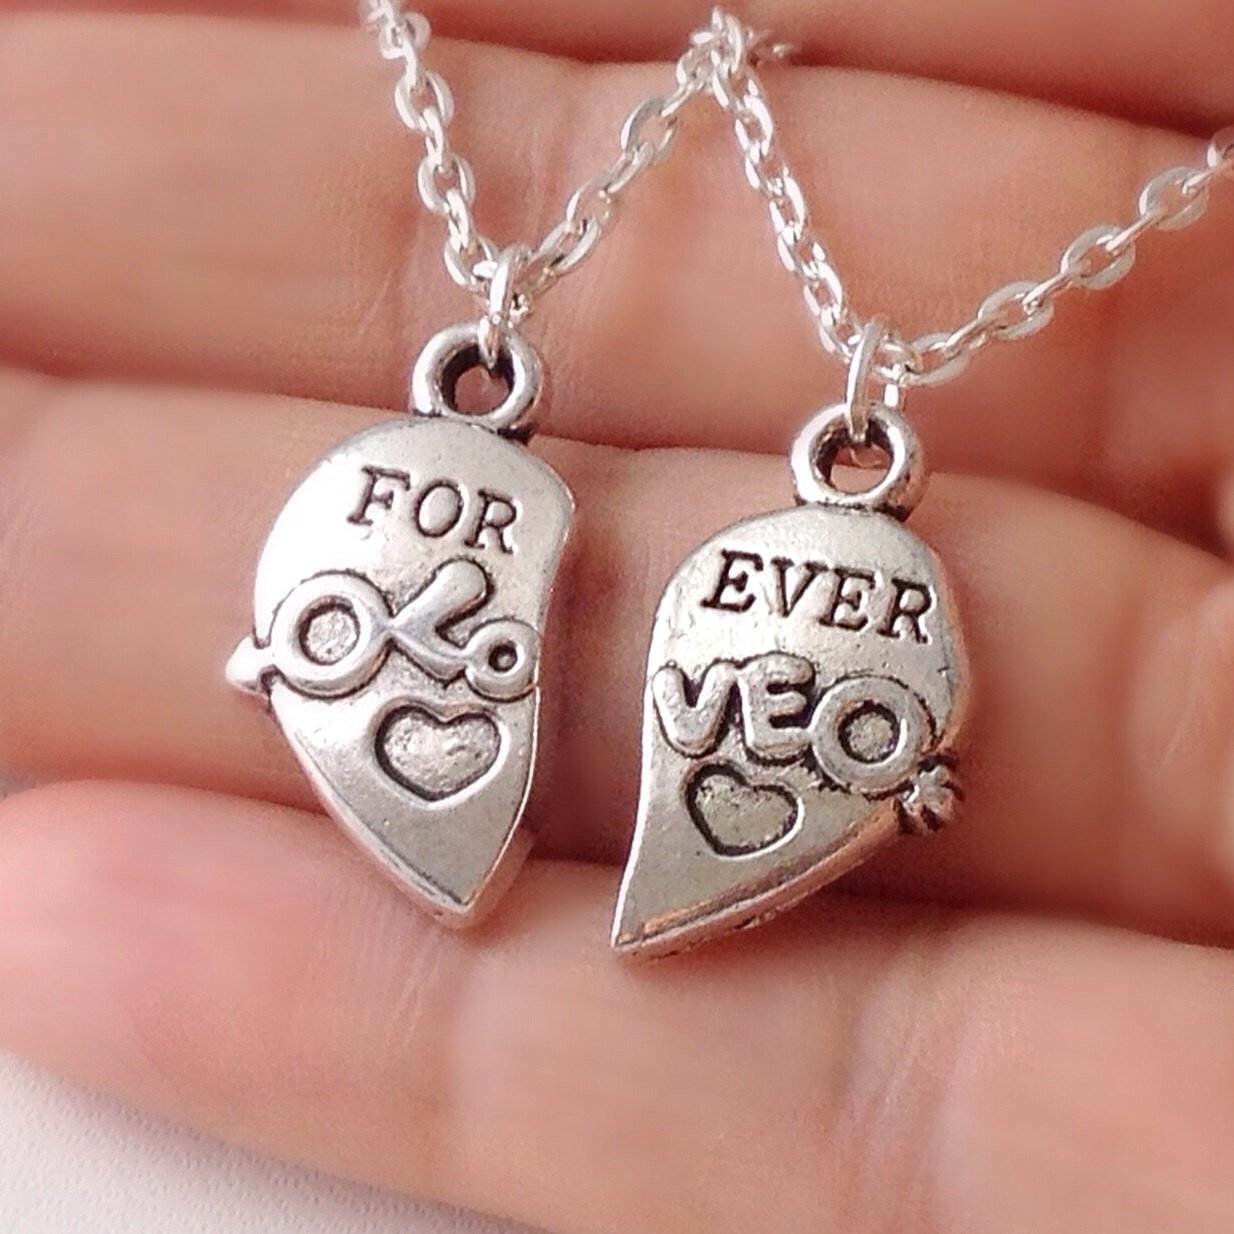 Set of Two Forever Love Half Heart Necklace couples jewelry